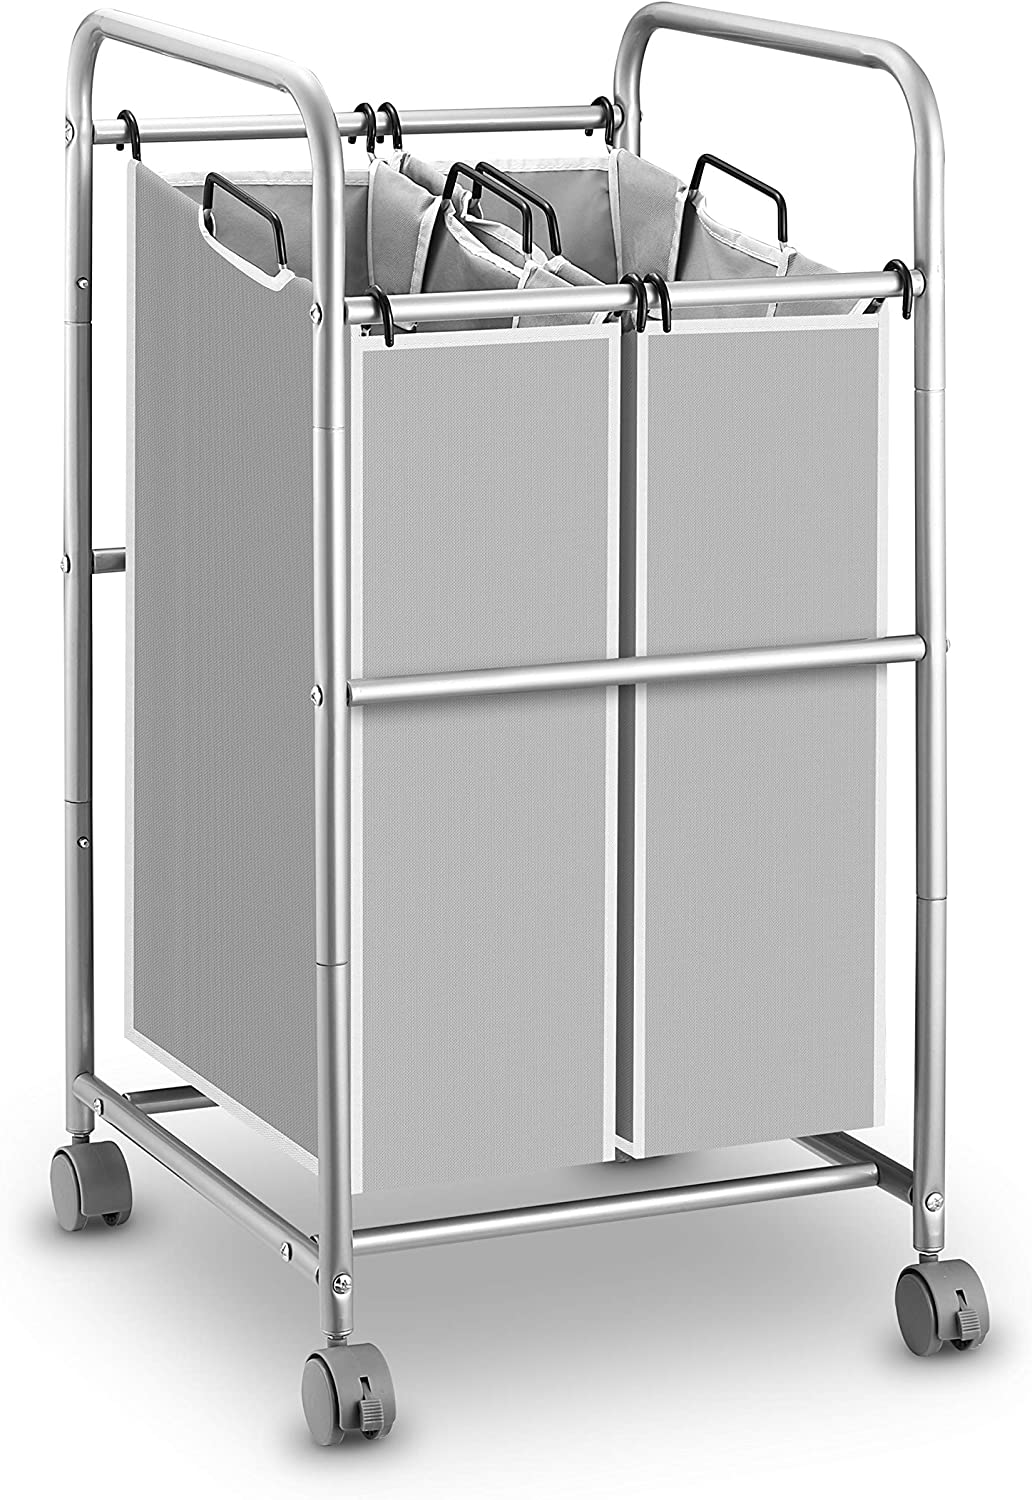 Simple Trending Heavy Duty 2-Bags Laundry Hamper Sorter Cart with Rolling Wheels, Silver